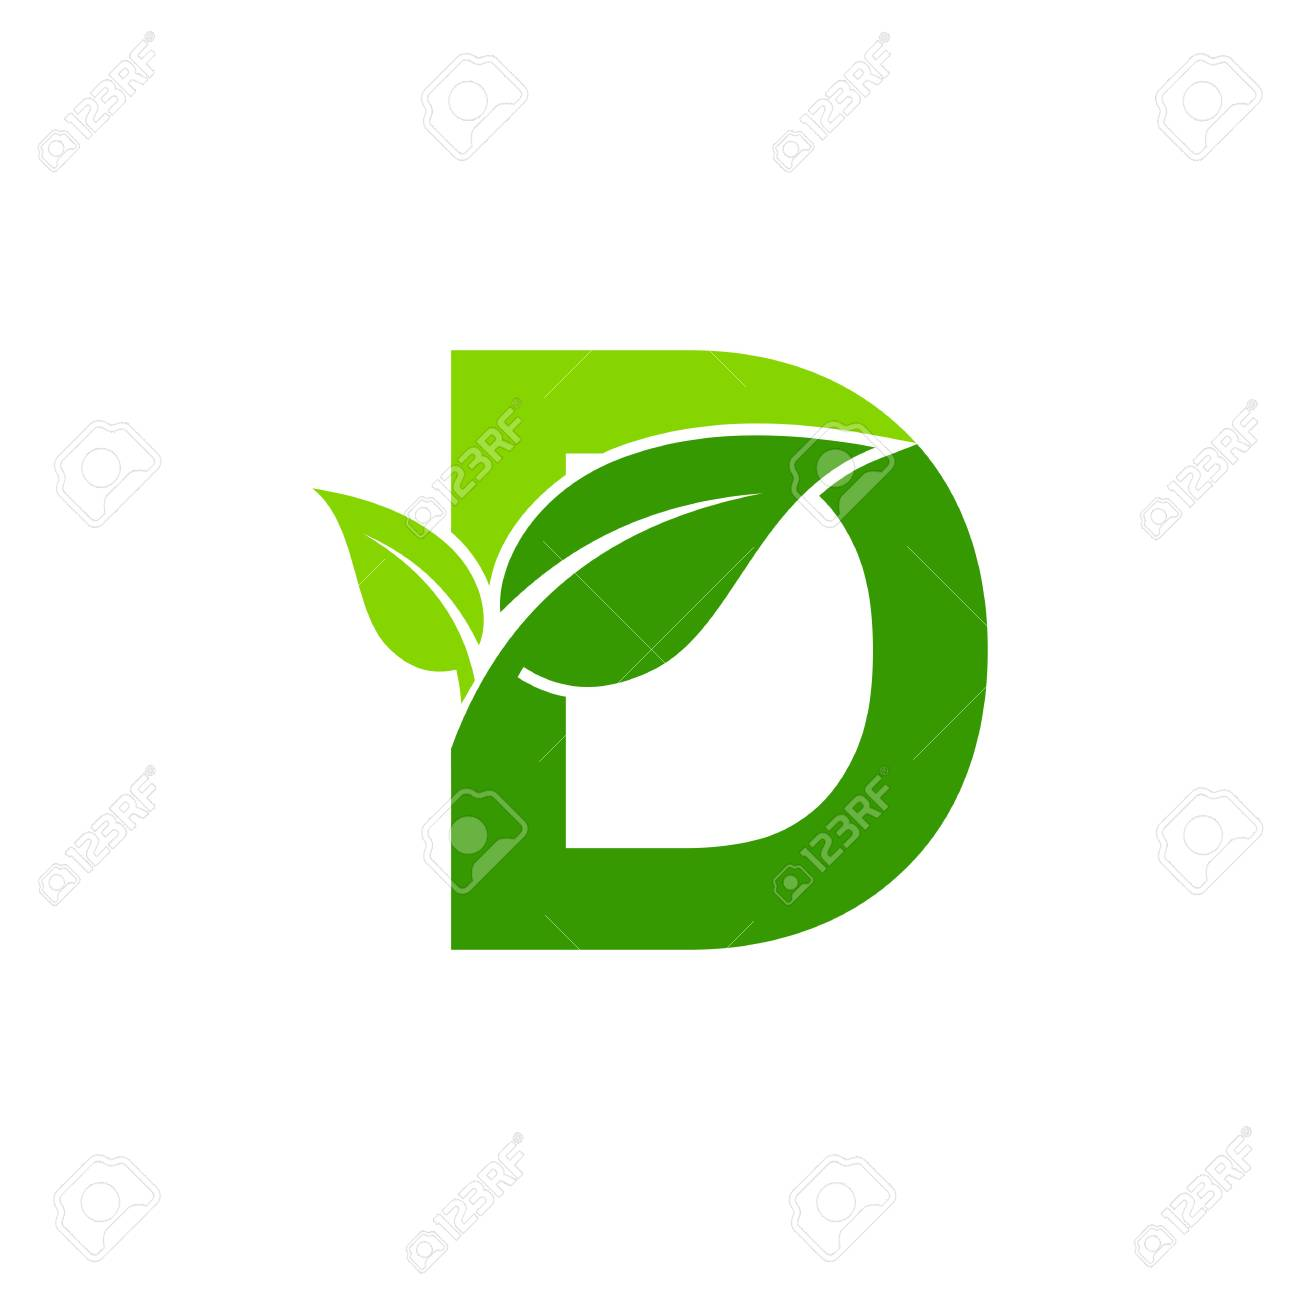 Letter D Concept Nature Green Leaf Symbol Initials Icon Design Stock Vector